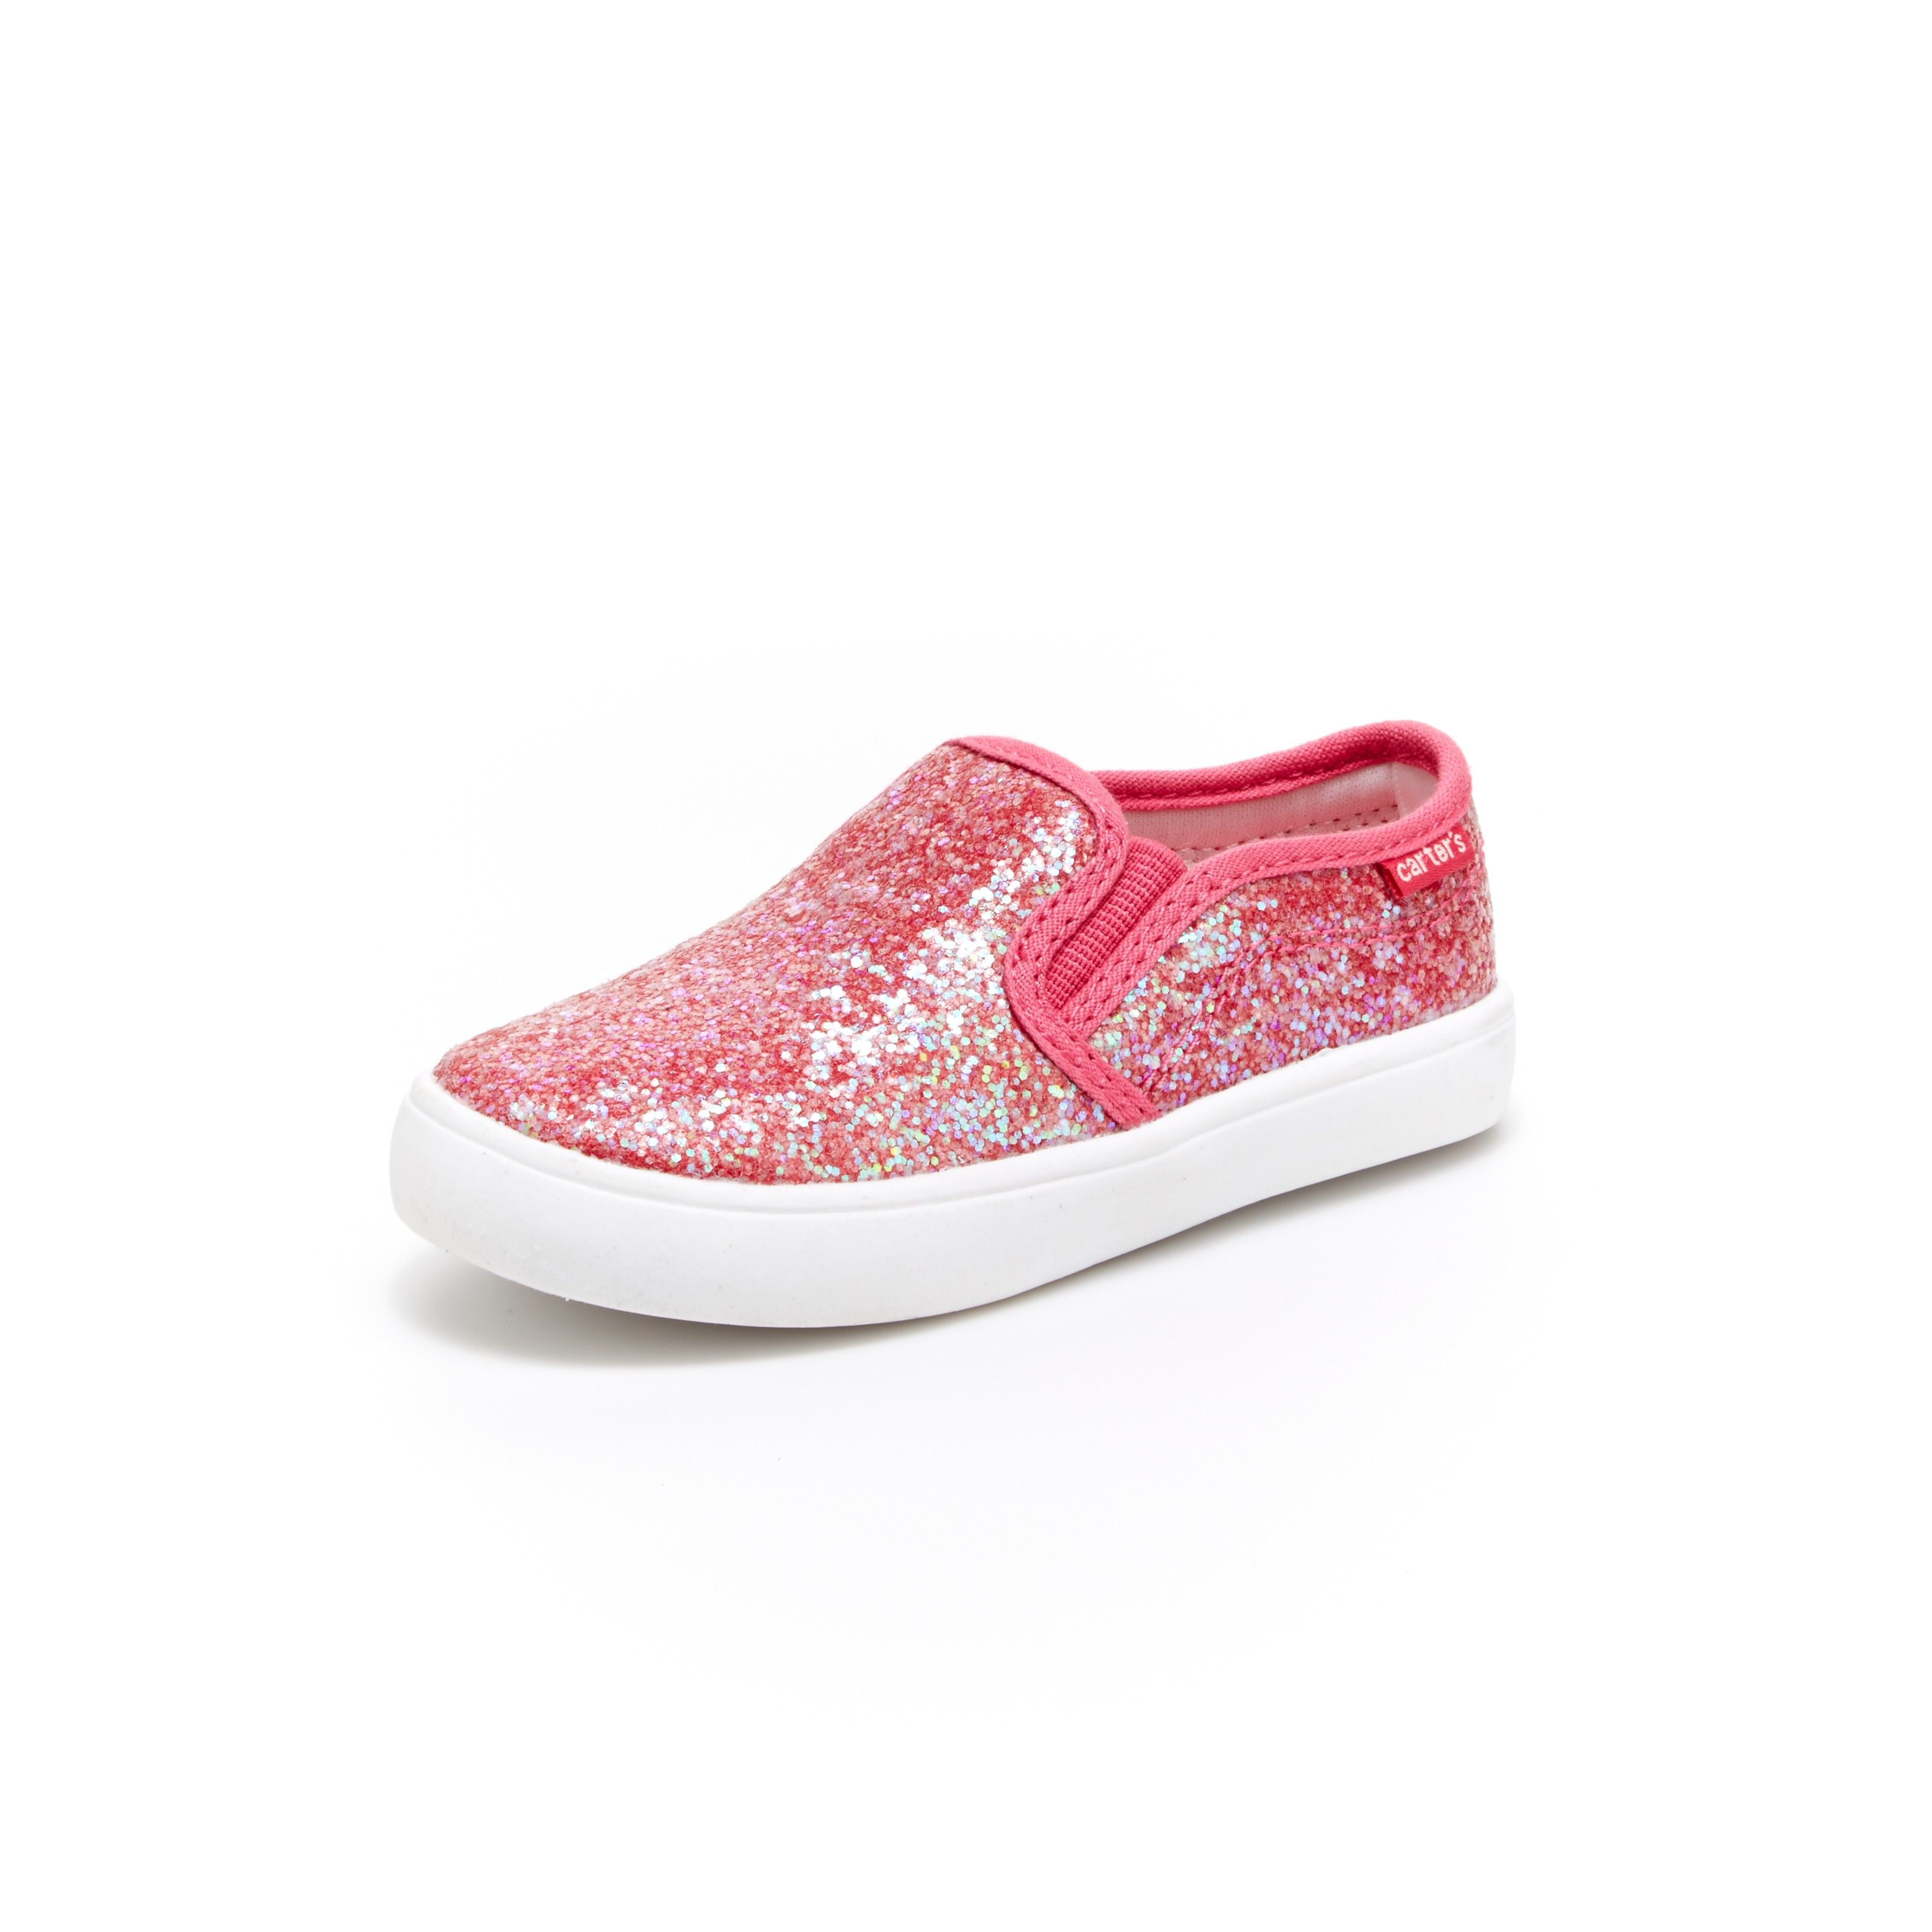 Hopscotch - carter s - Shimmery Pink Slip On Shoes ad26add2133